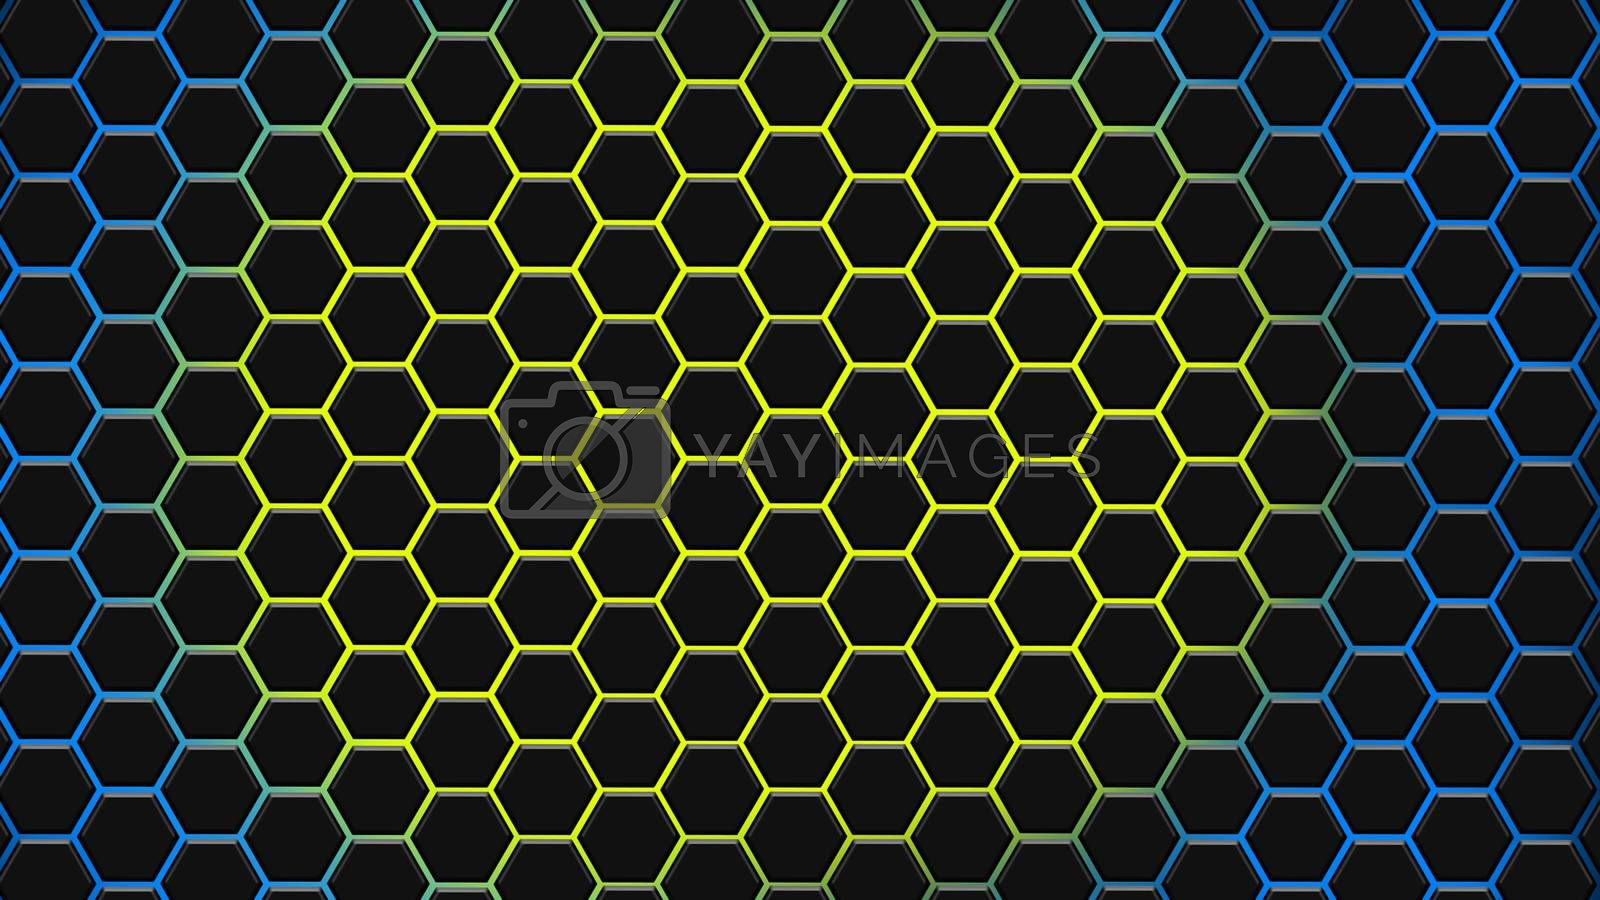 Yellow and blue hexagonal texture. Abstract background for design.